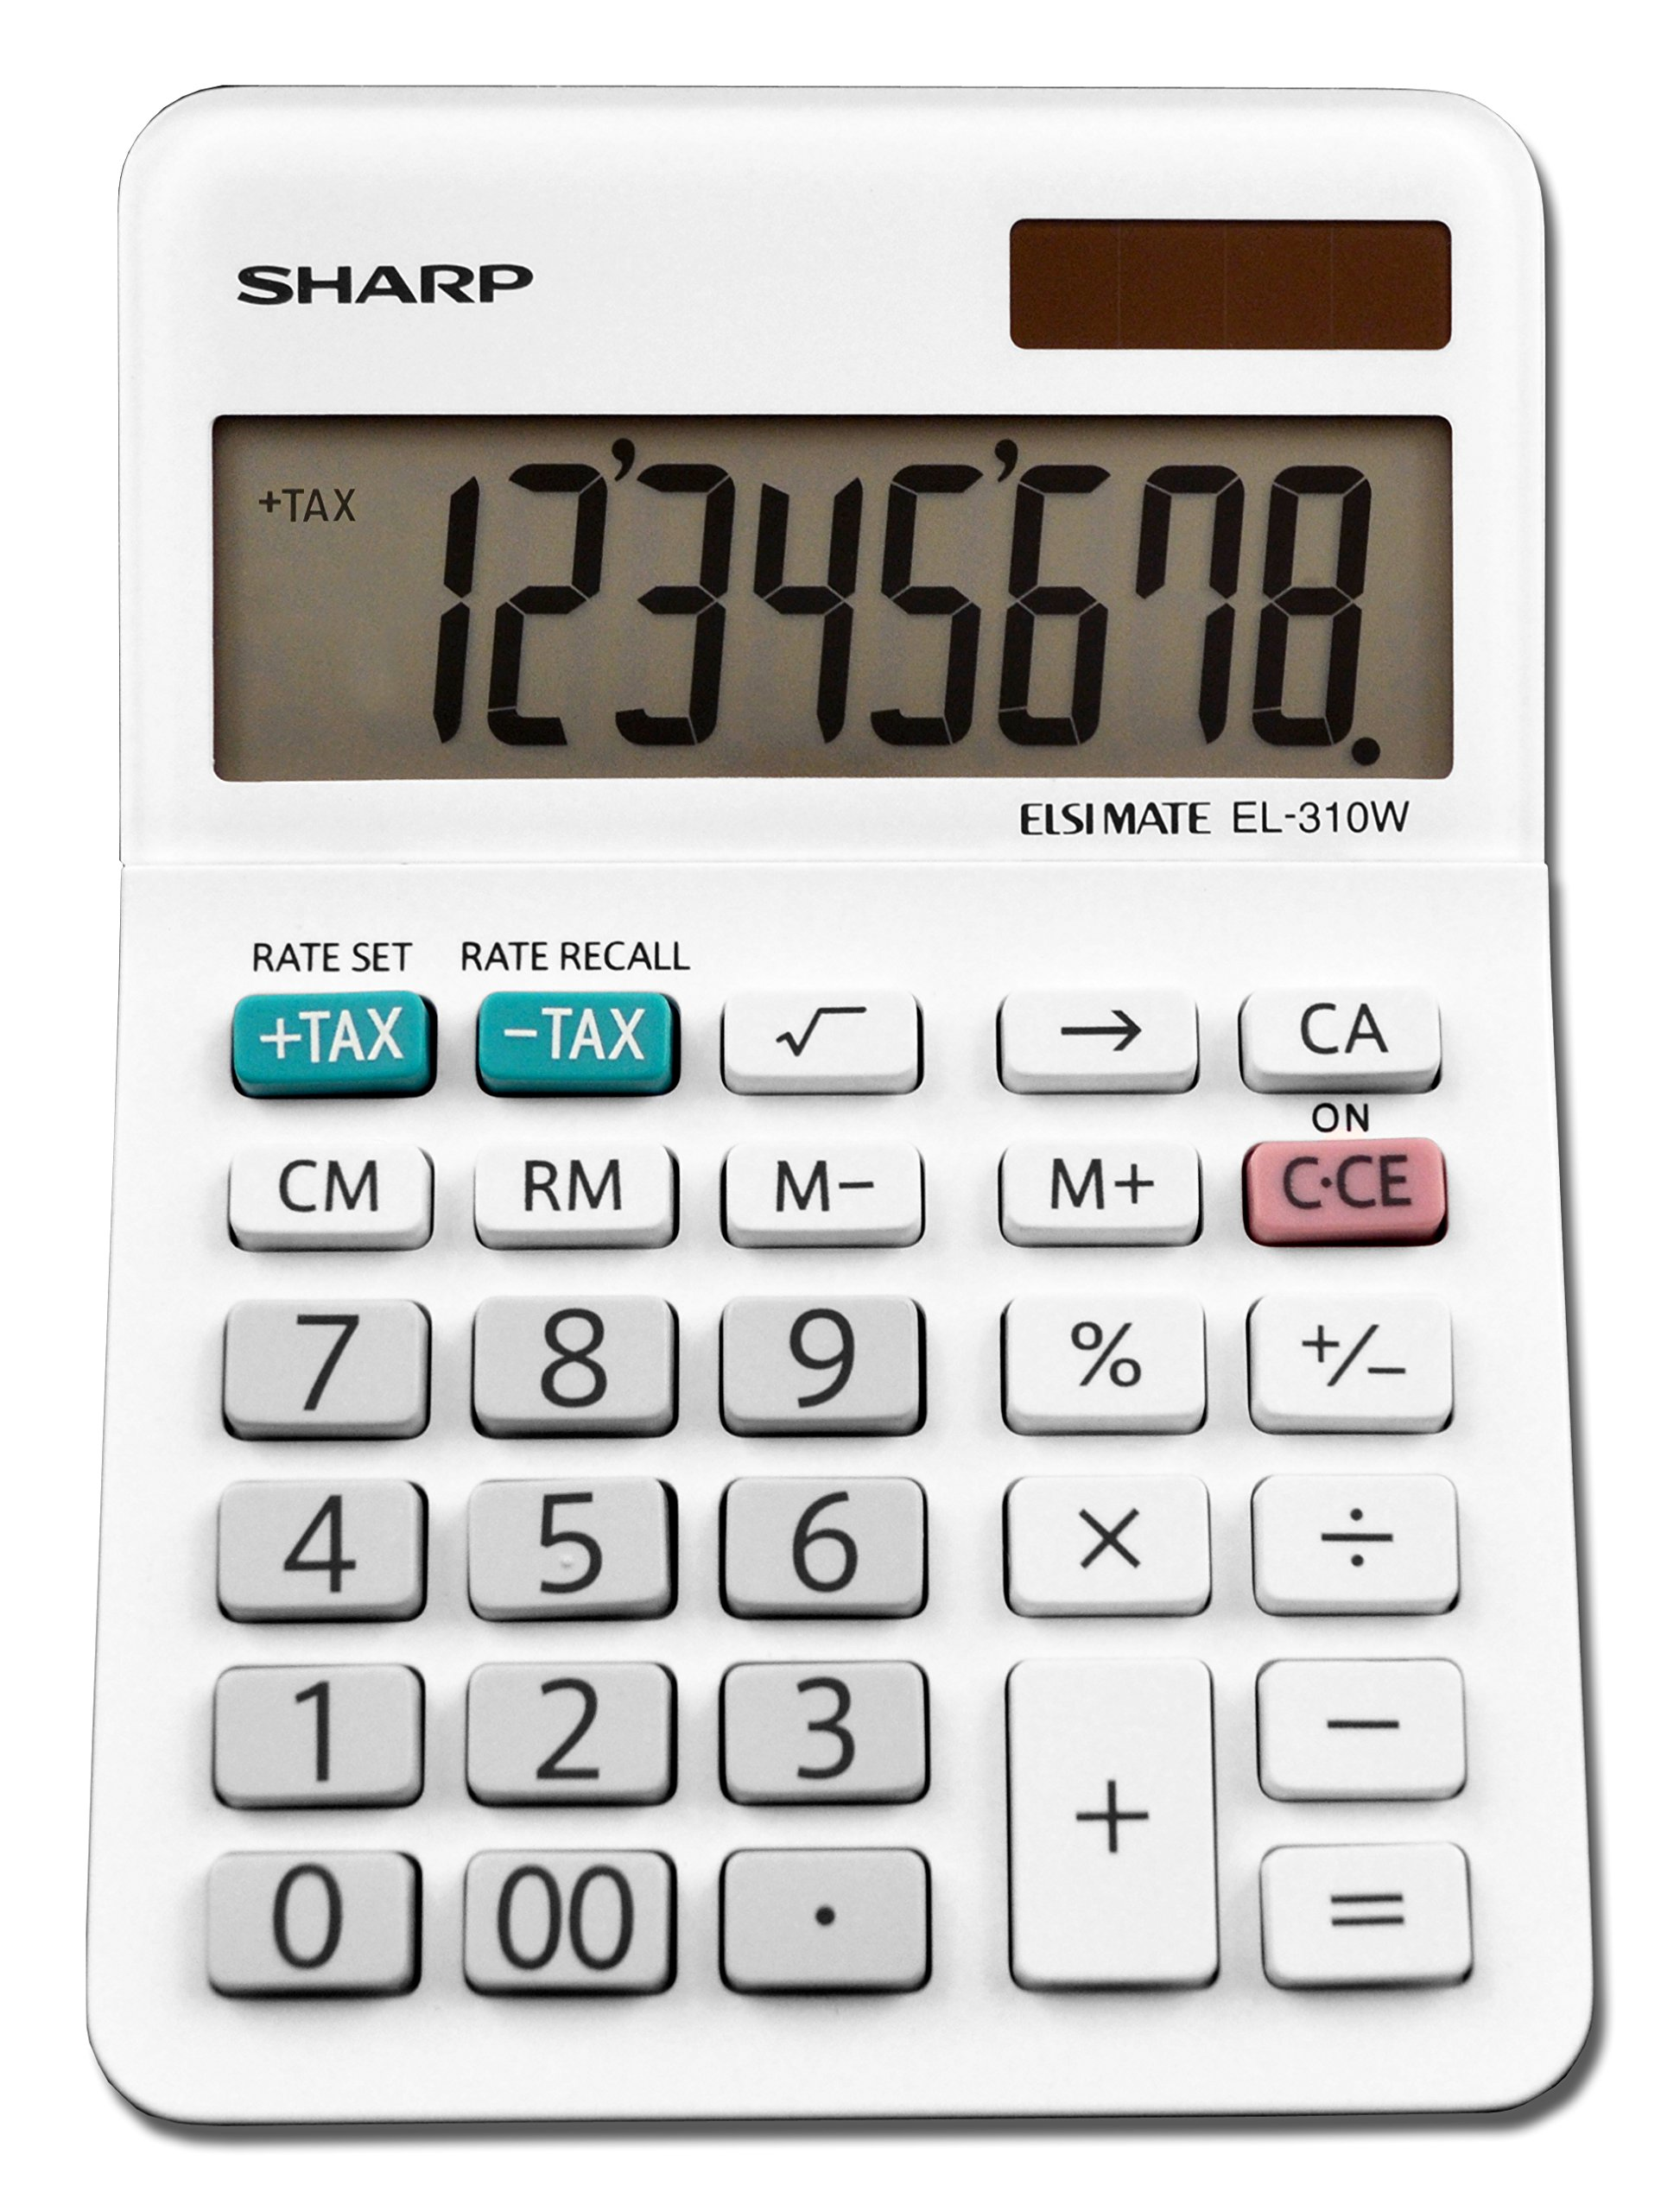 Sharp EL-310WB Mini Desktop Calculator, 8 Digit Angled Display, White, 3.38'' x 4.75'' x 1.0''